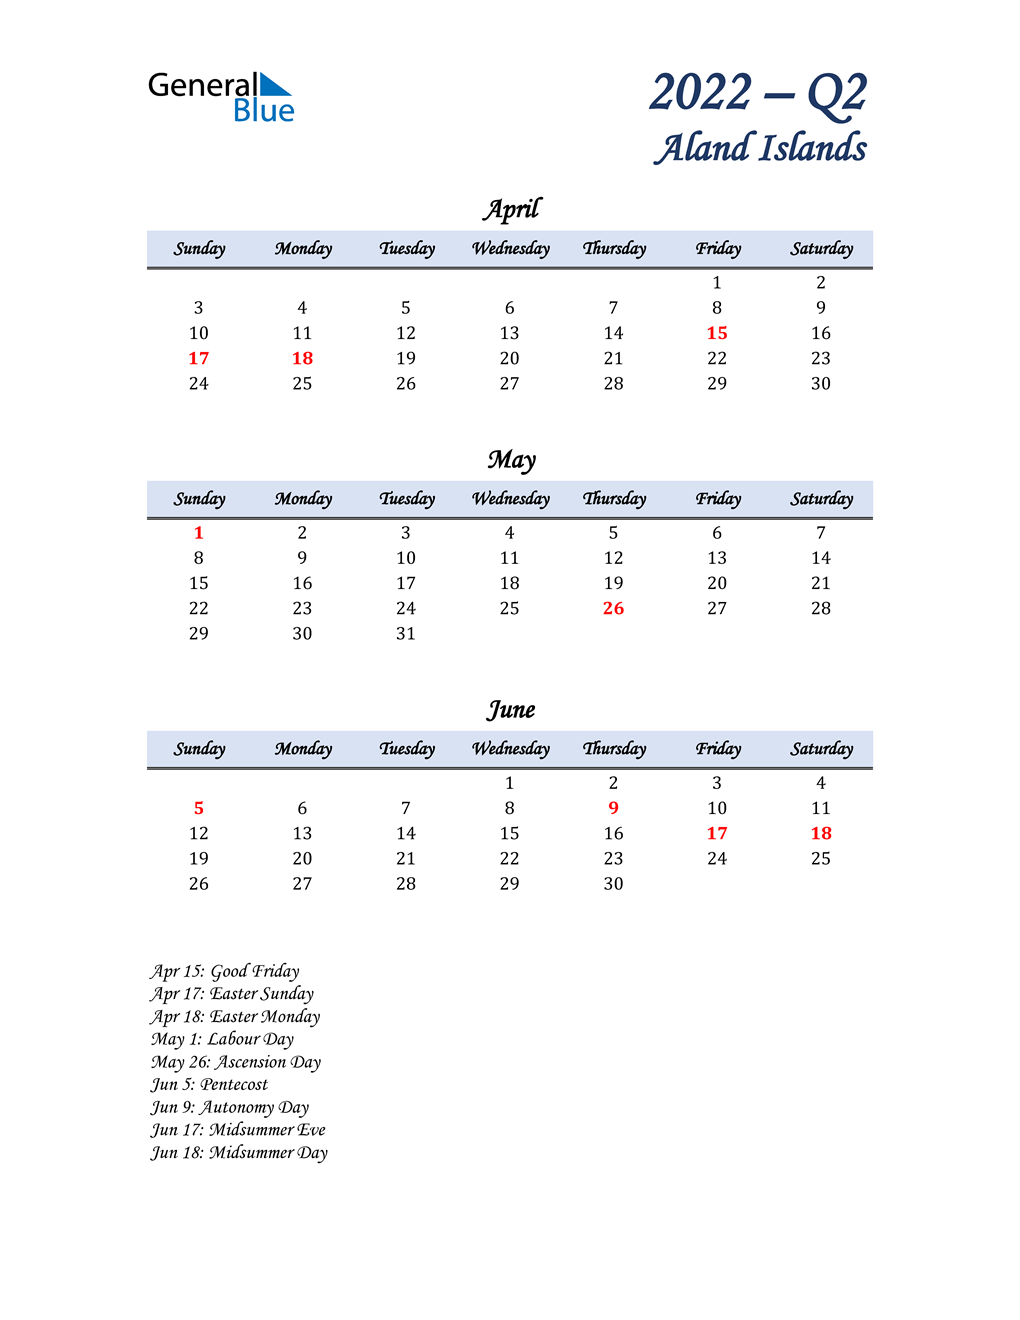 April, May, and June Calendar for Aland Islands